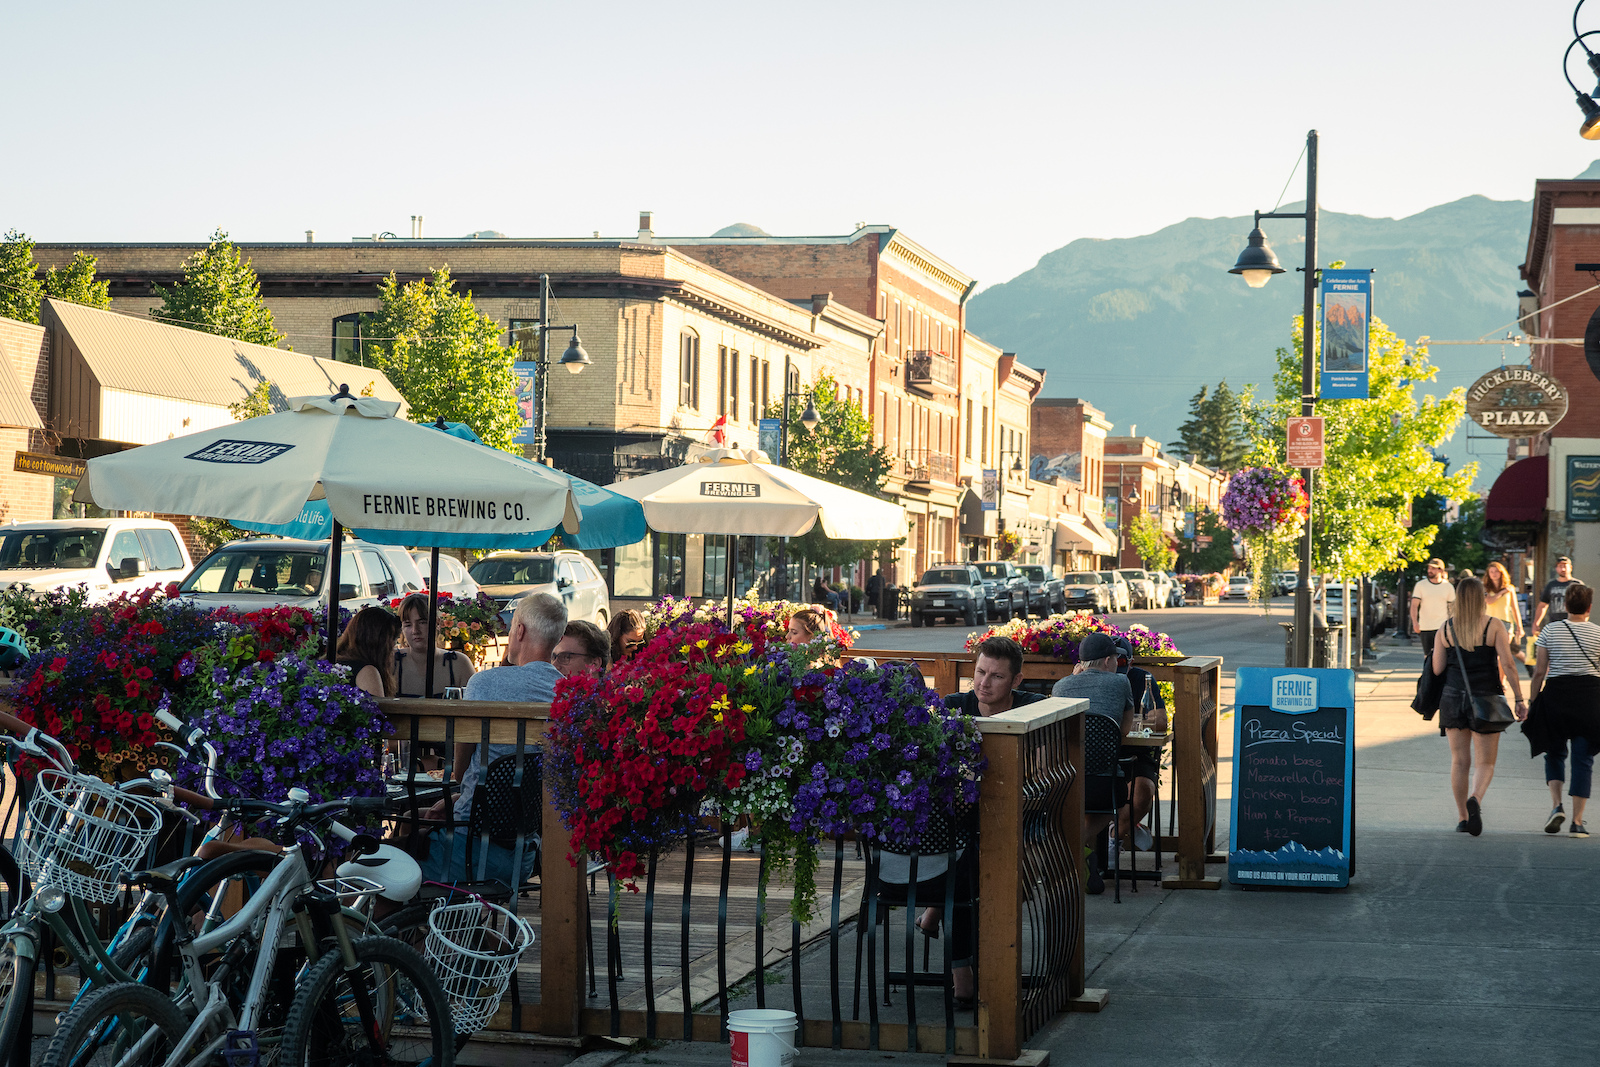 Lots of great outdoor seating on the main drag in Fernie